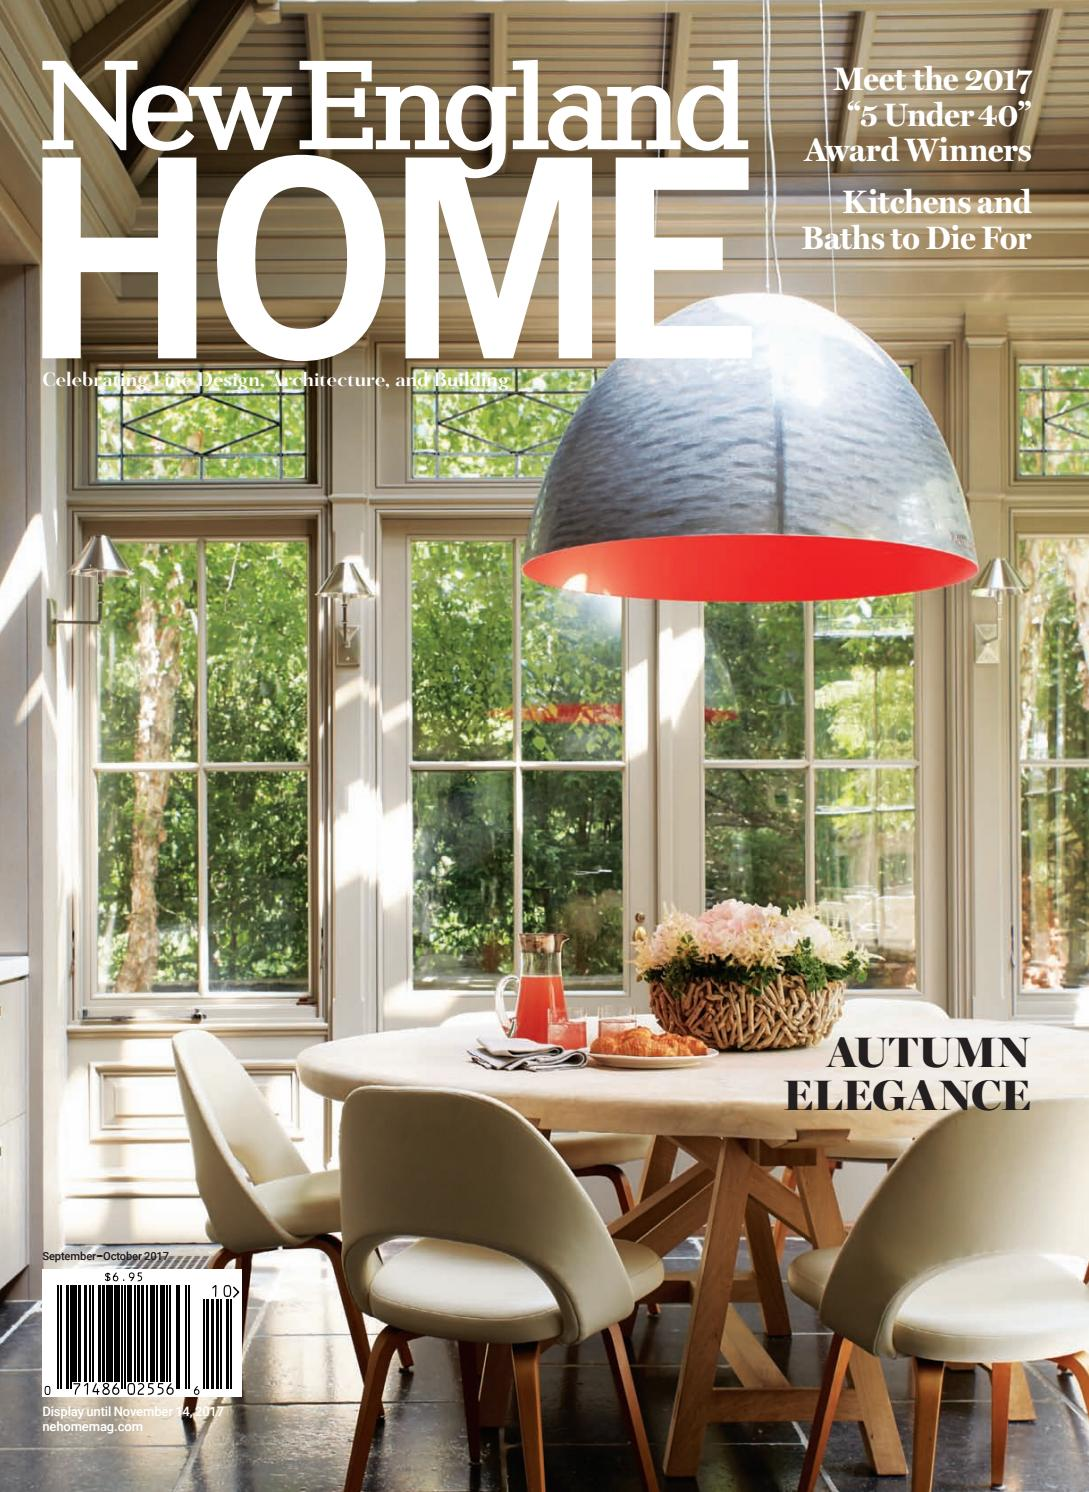 New england home september october 2017 by new england home magazine llc issuu